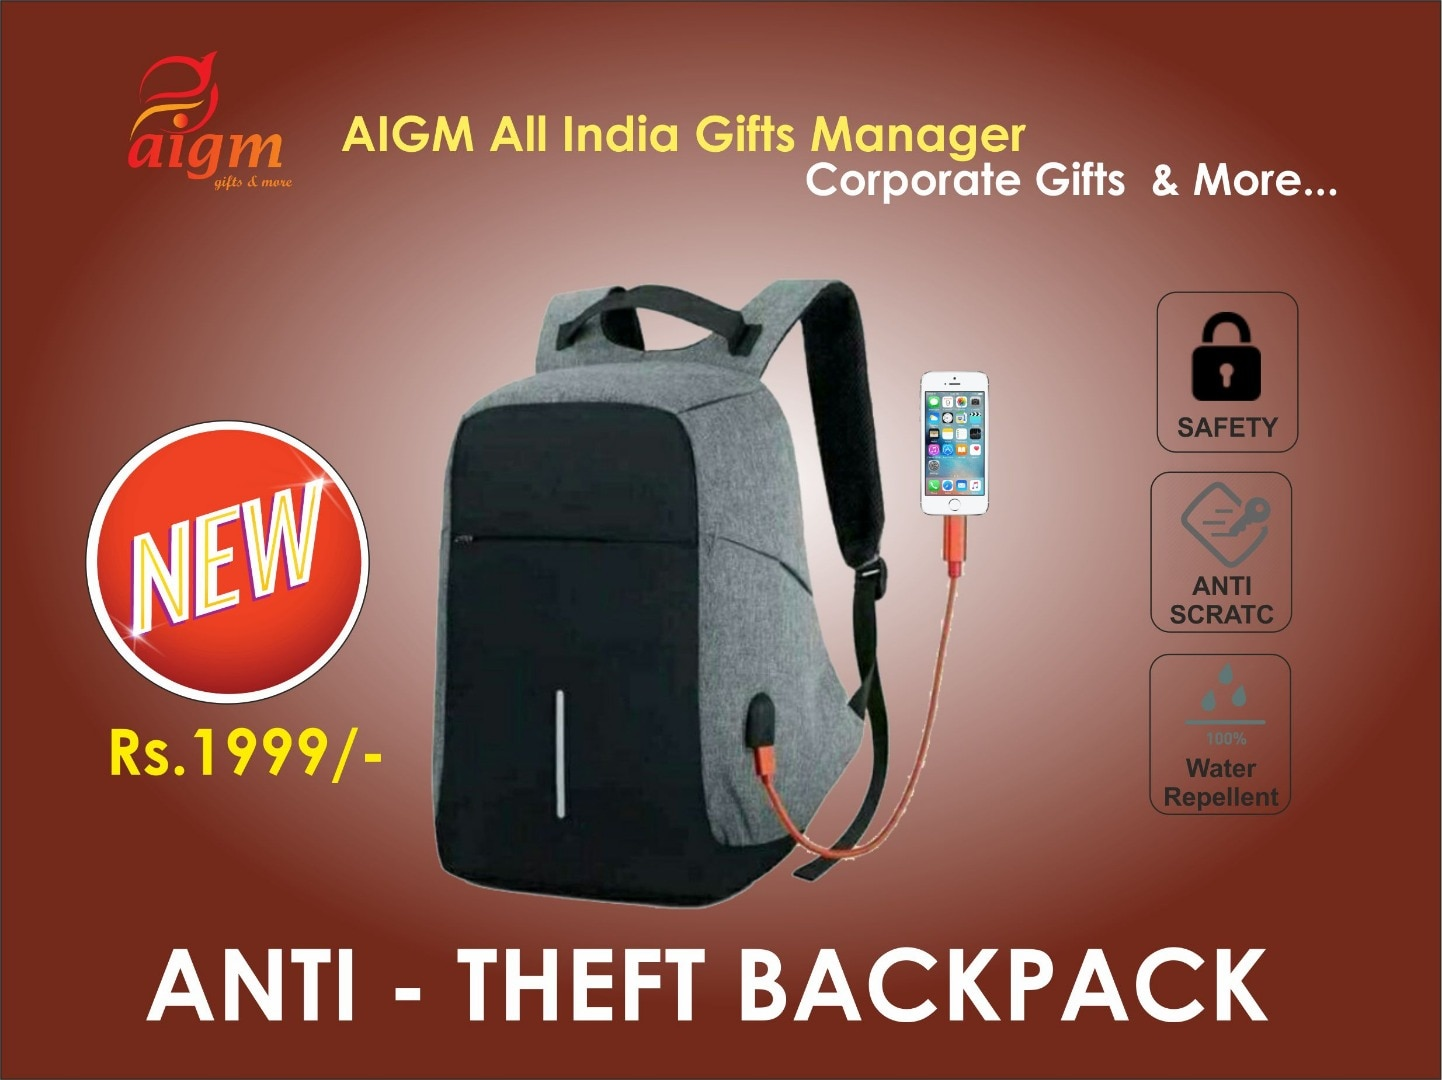 All India Gifts Manager